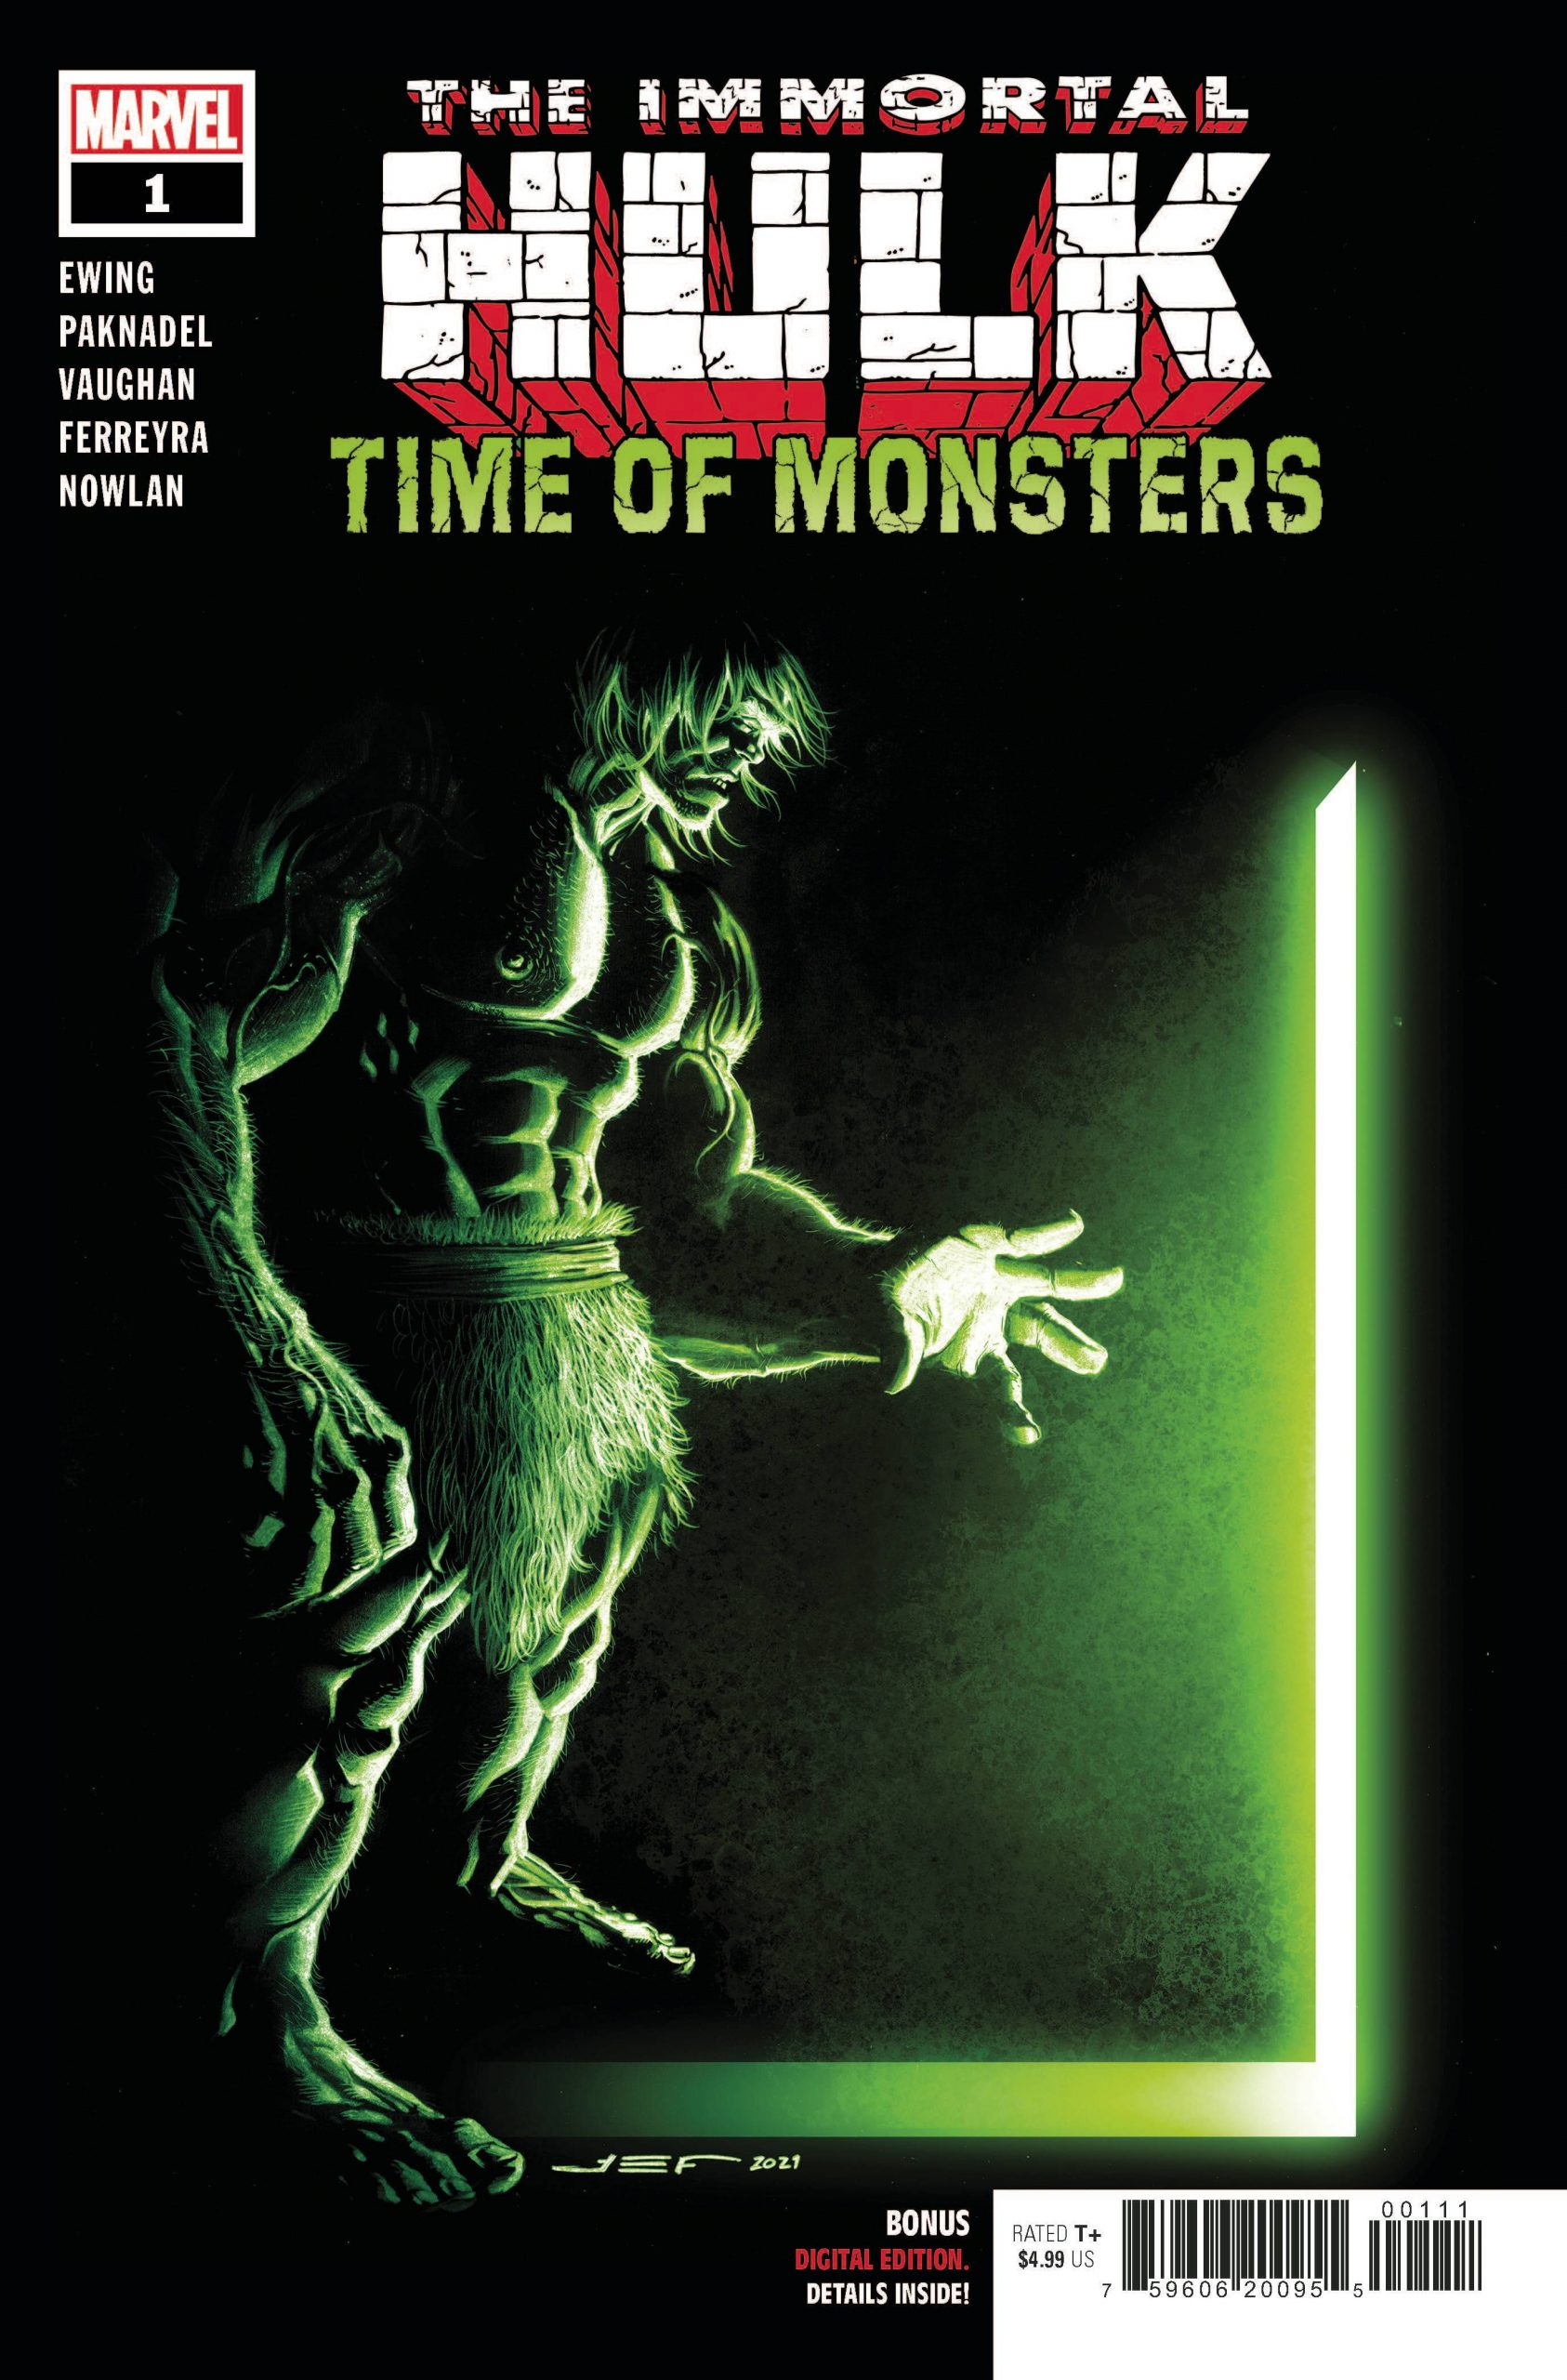 Immortal-Hulk-Time-Of-Monsters-1-spoilers-0-1-scaled-1 Immortal-Hulk-Time-Of-Monsters-1-spoilers-0-1-scaled-1